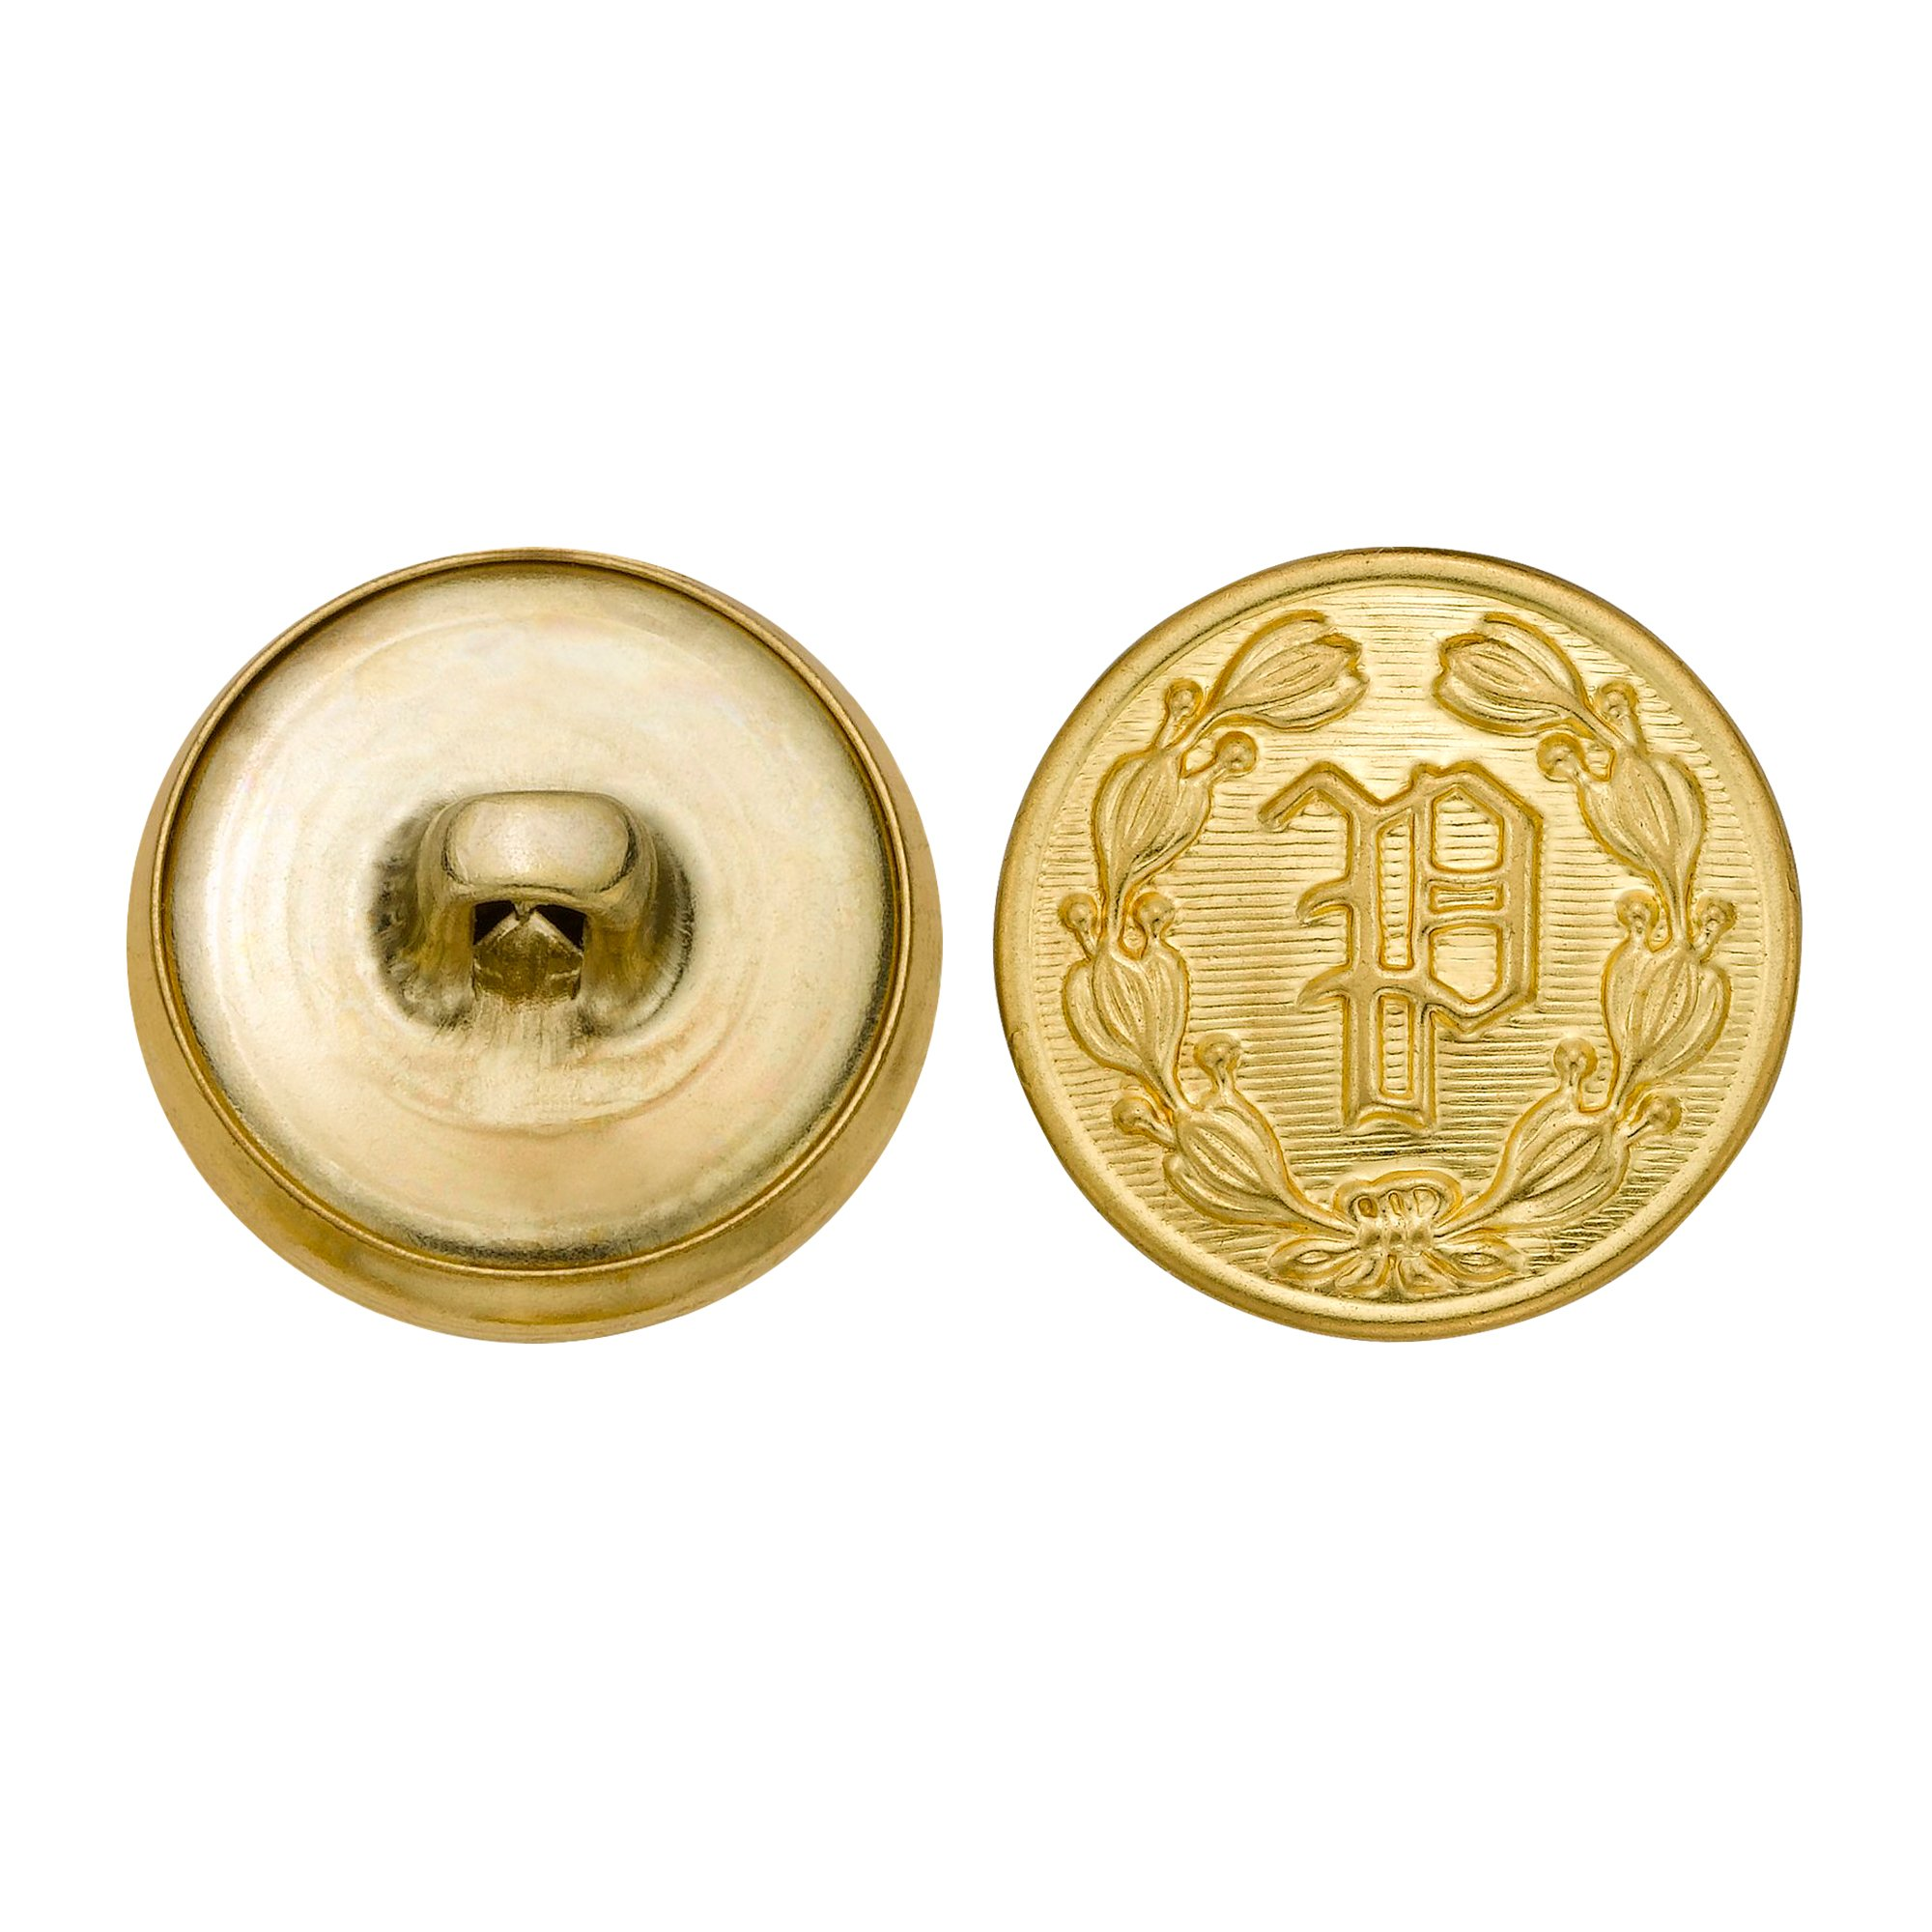 C&C Metal Products 5202 Police P Metal Button, Size 30 Ligne, Gold, 36-Pack by G & S Metal Products Company